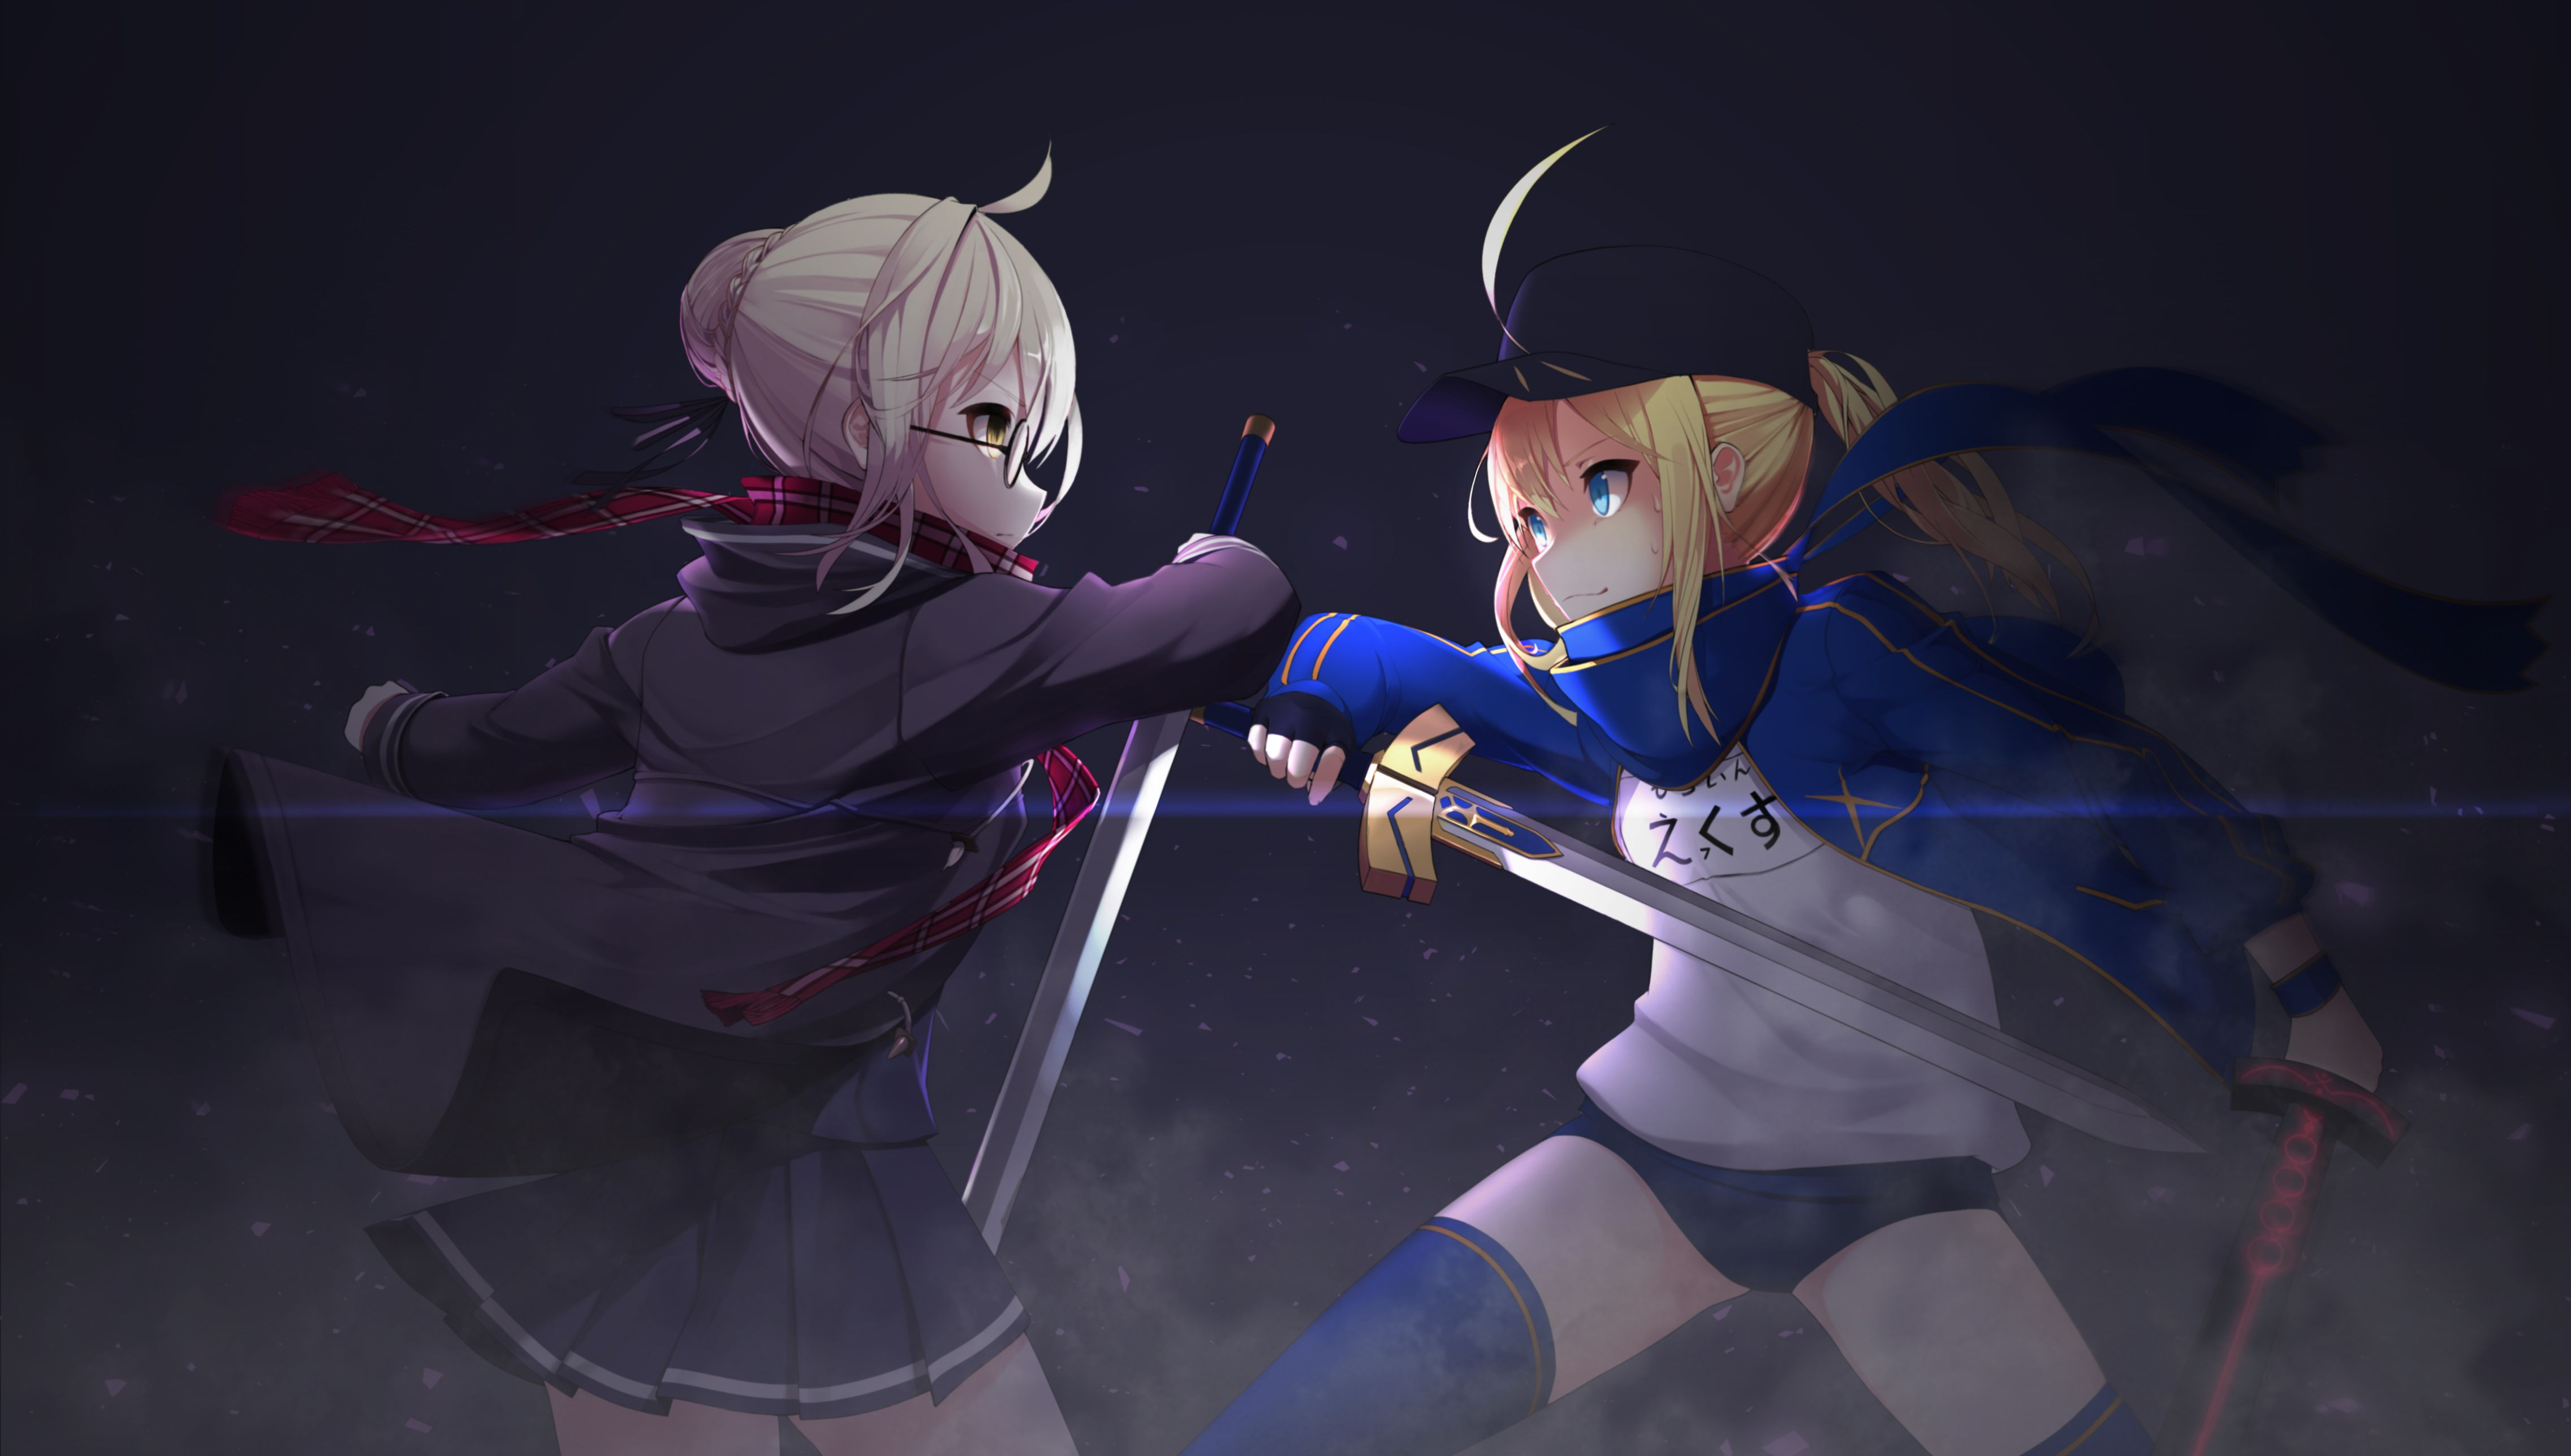 Heroine X And Saber Anime Fate Grand Order Wallpaper